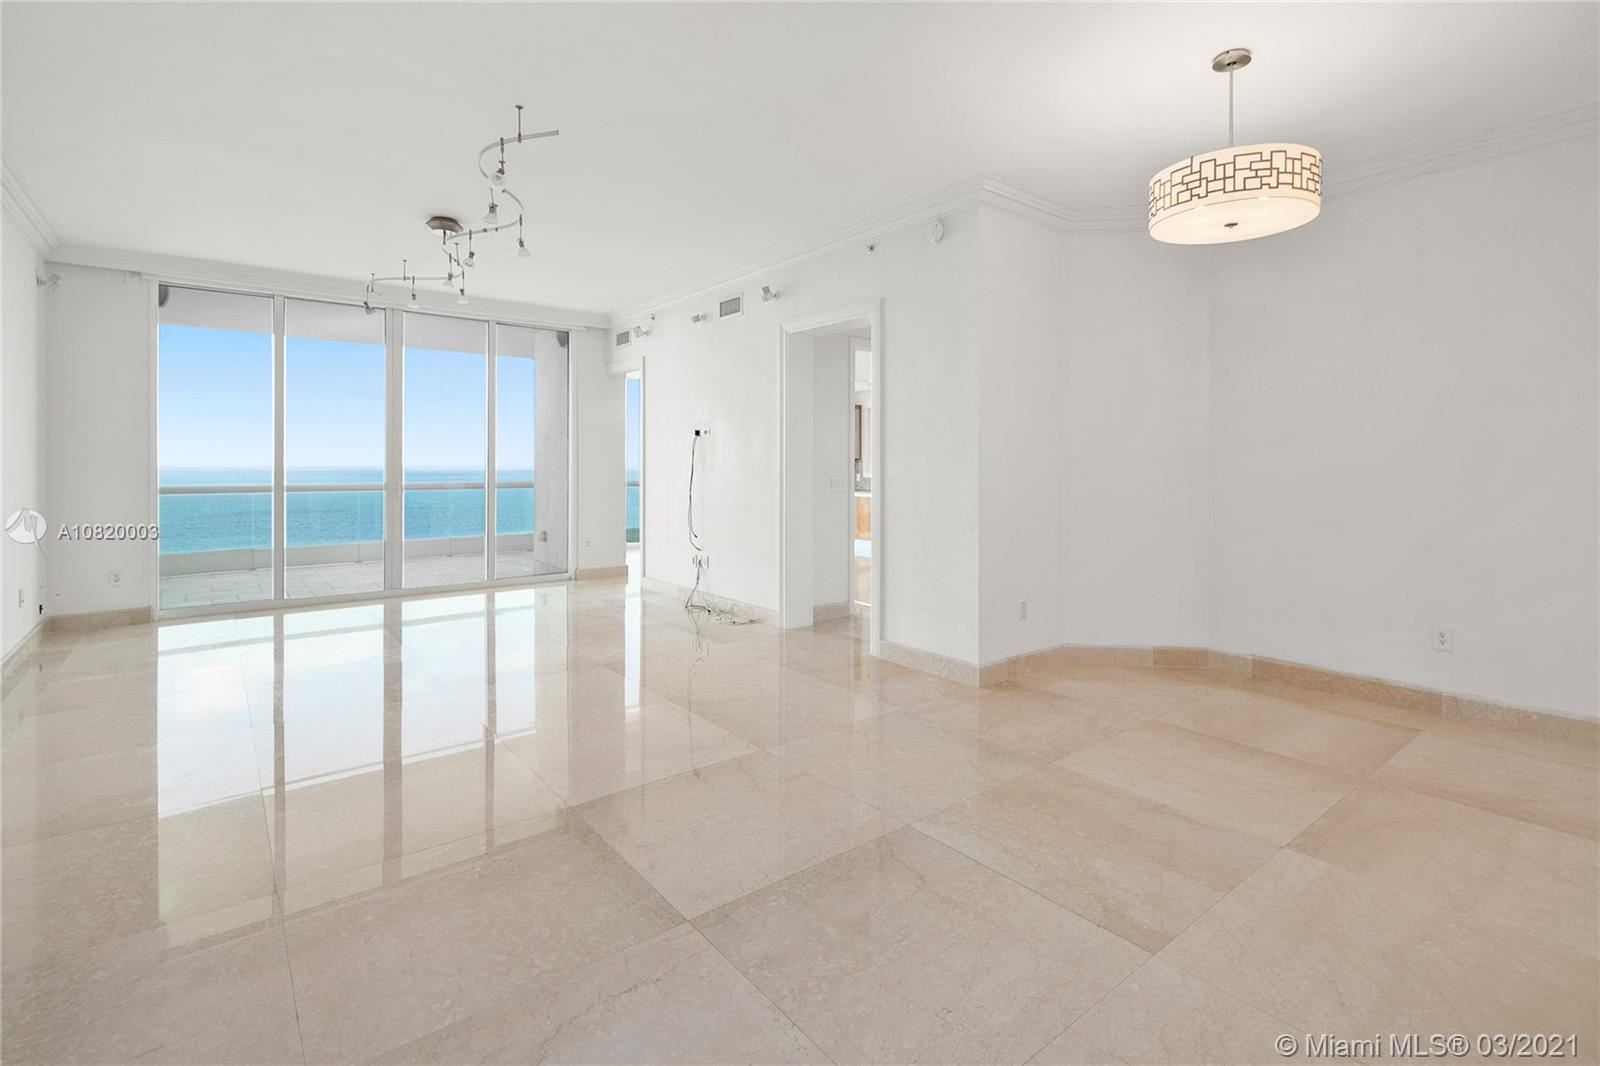 16051 Collins Ave #2802, Sunny Isles, FL 33160 - #: A10820003